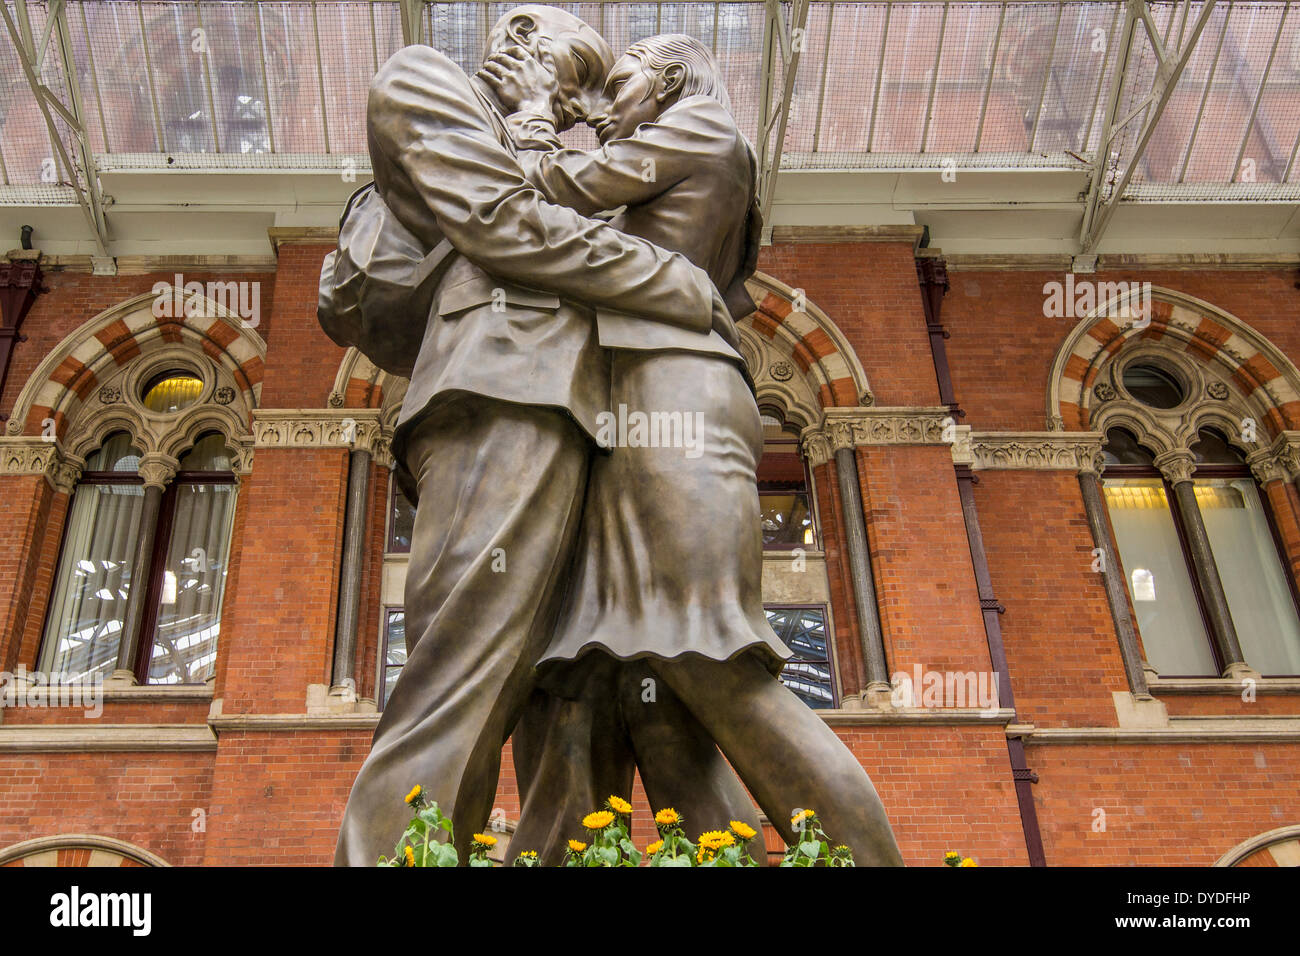 The Meeting Place sculpture in St Pancras station. - Stock Image